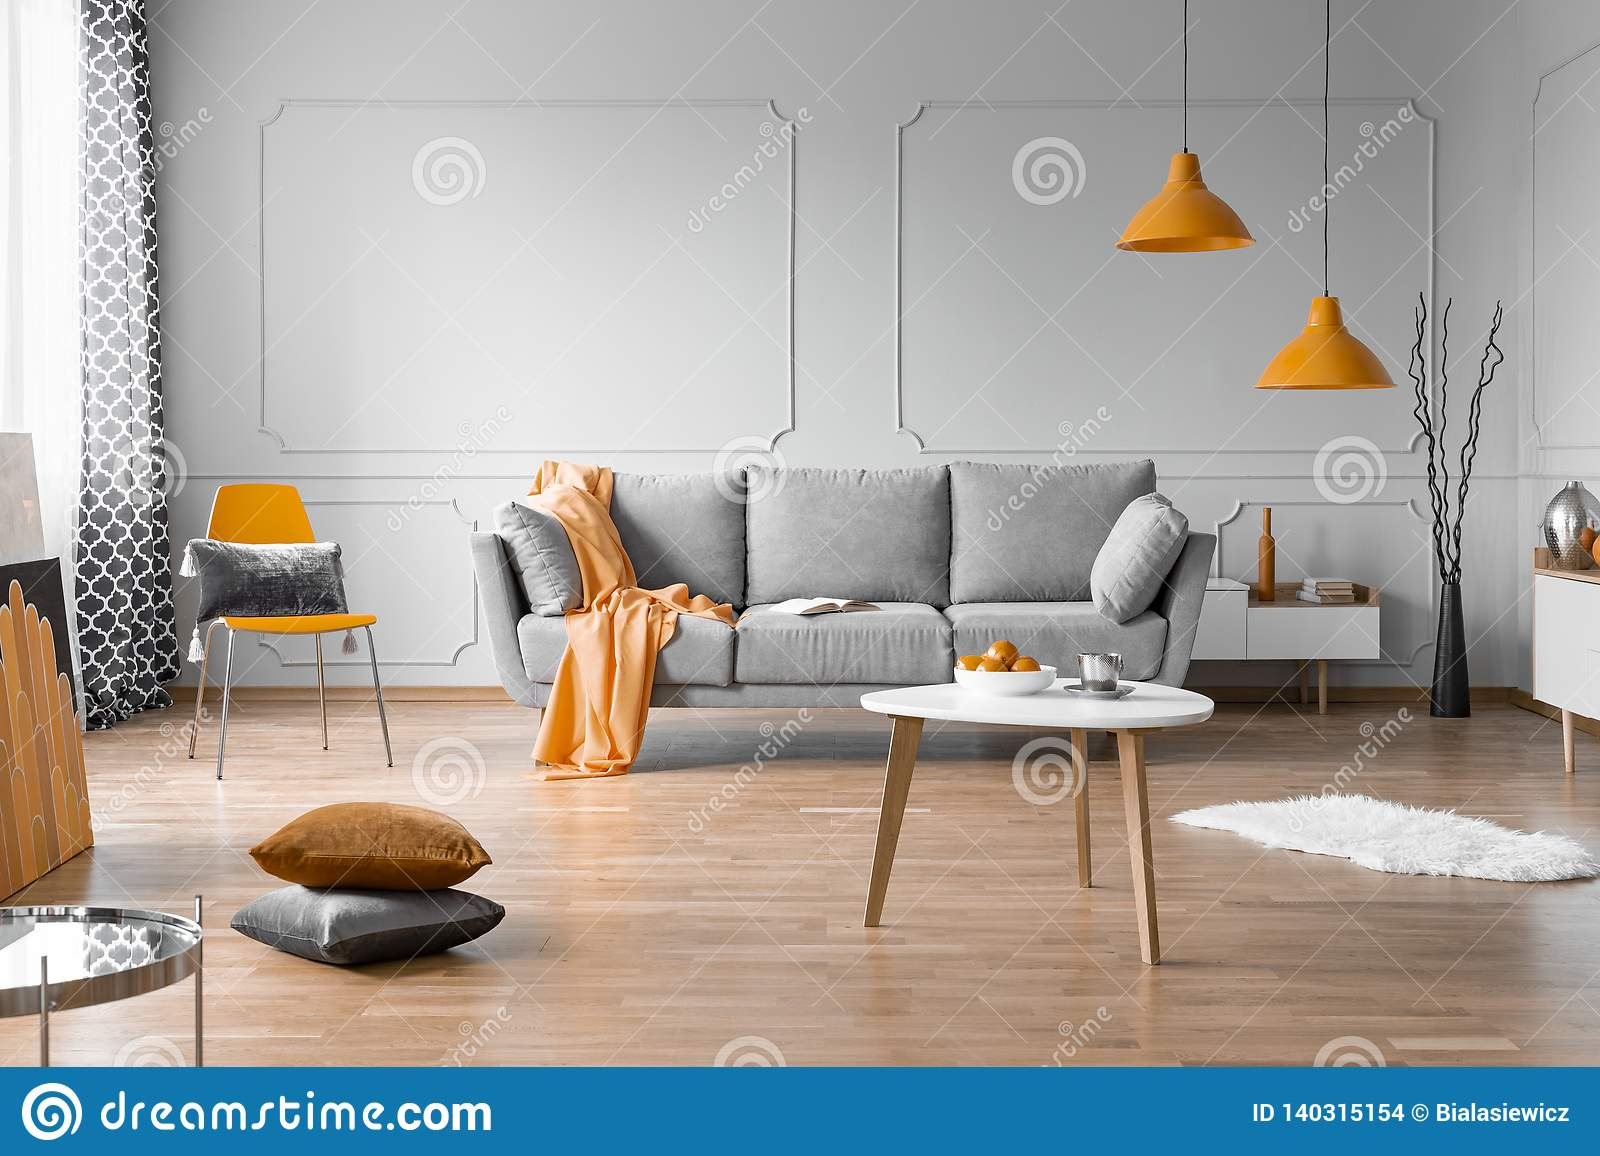 Fashionable Living Room Interior Design With Grey Couch ...